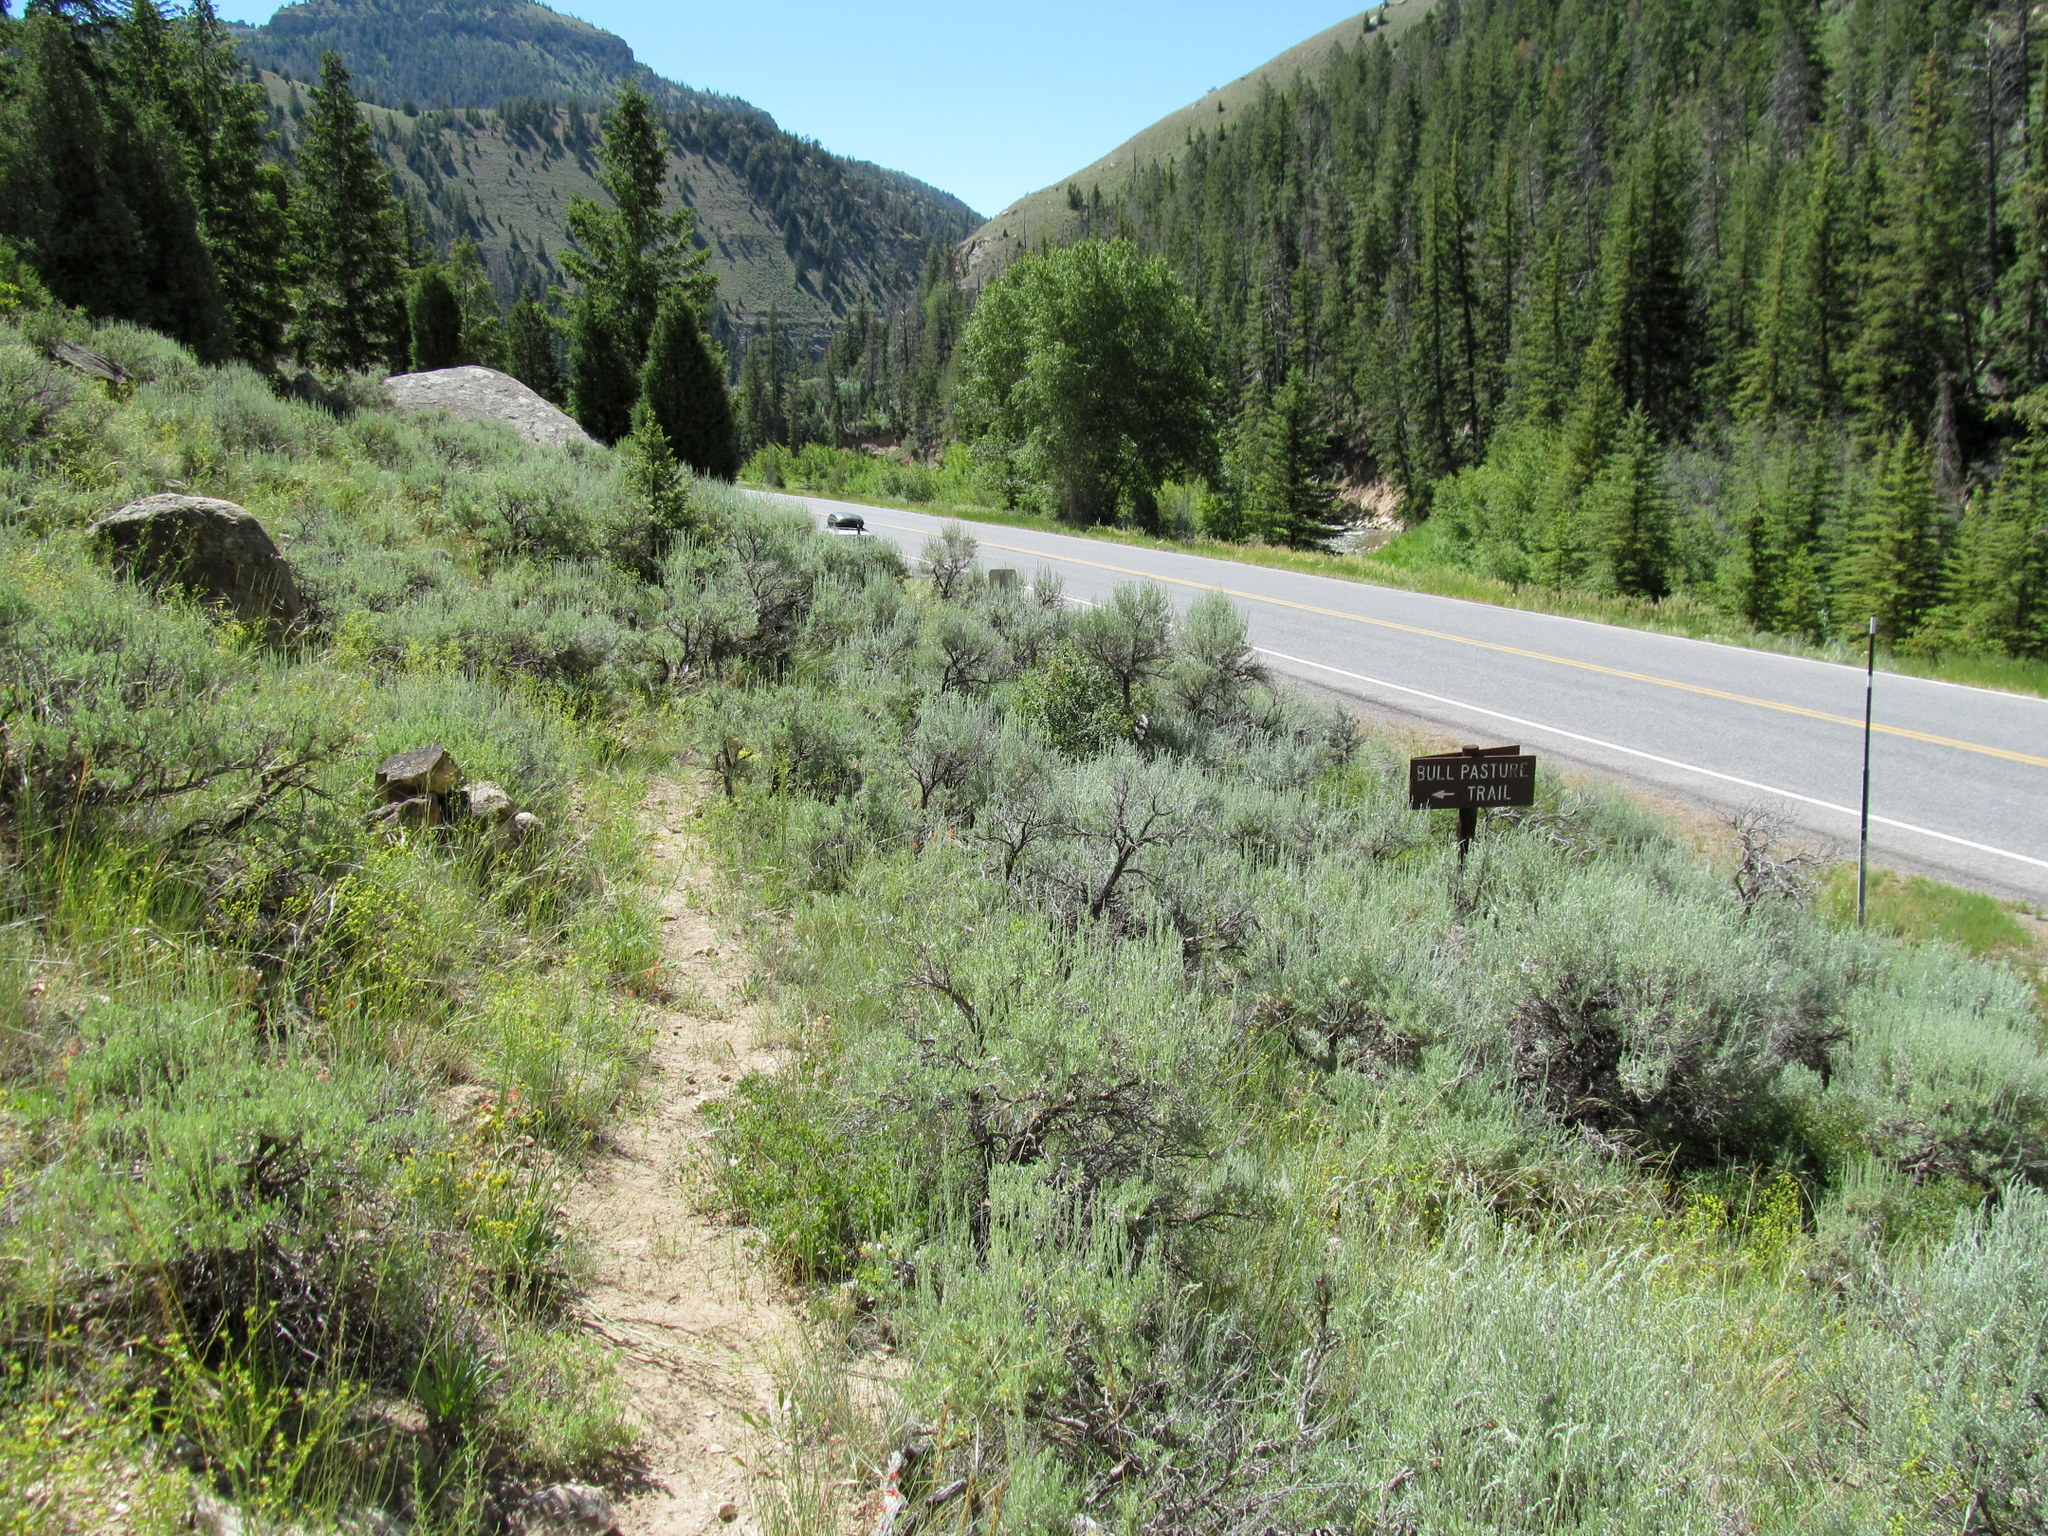 Photo: Bottom of the trail at Highway 31